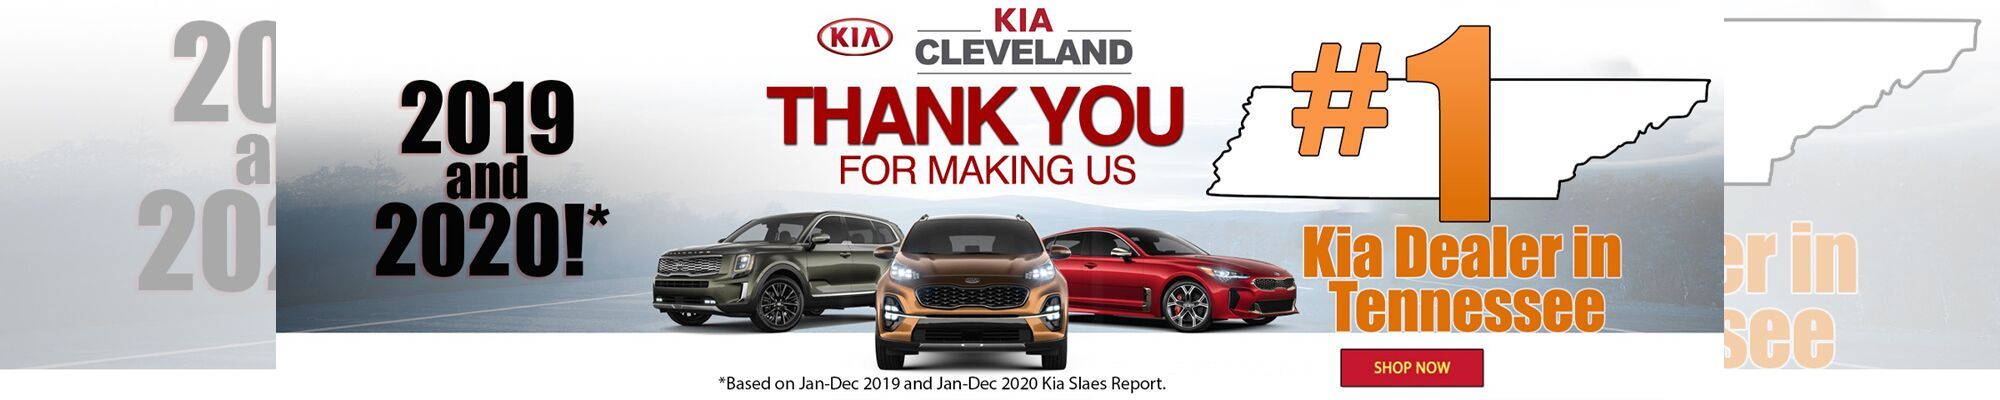 #1 Kia Dealer in Tennessee